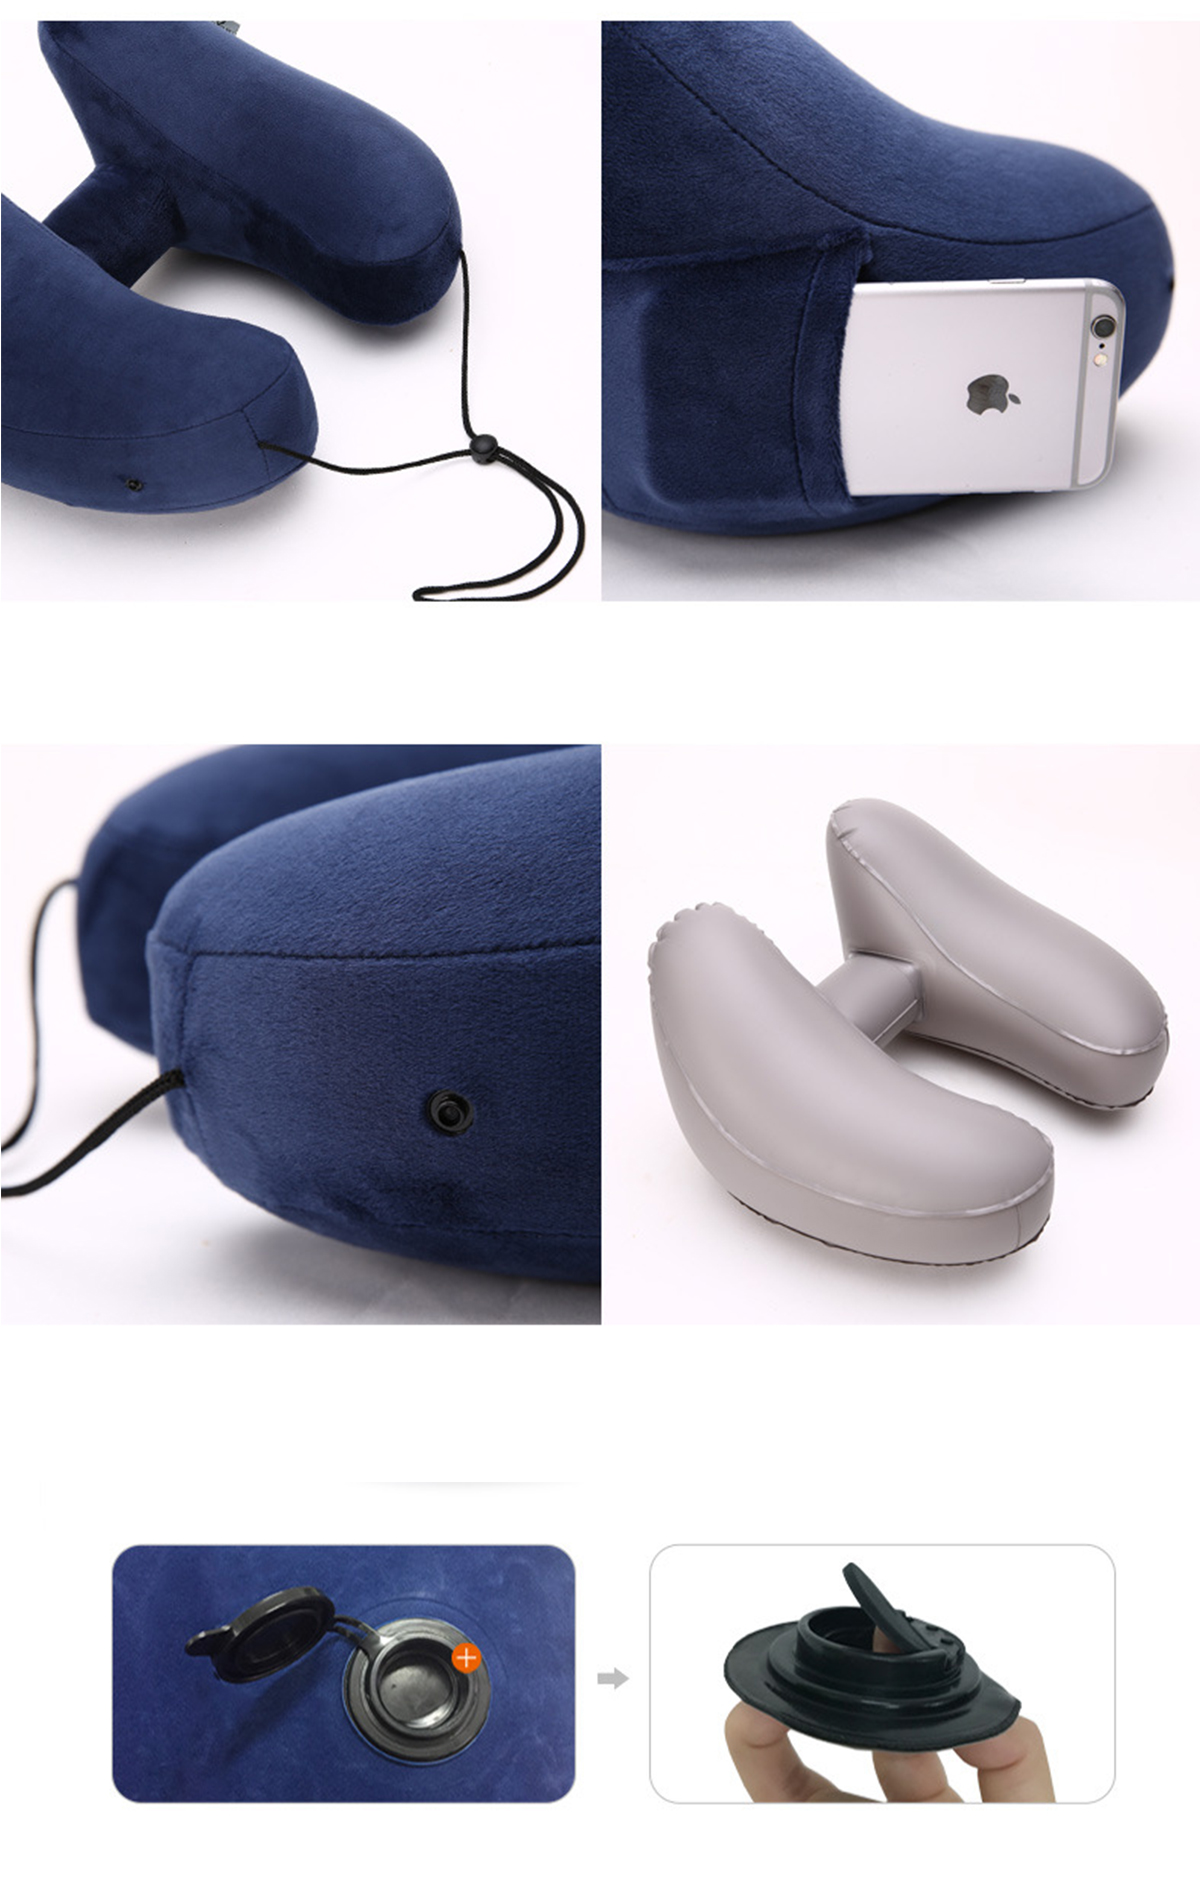 H-Shaped Inflatable Travel Pillows